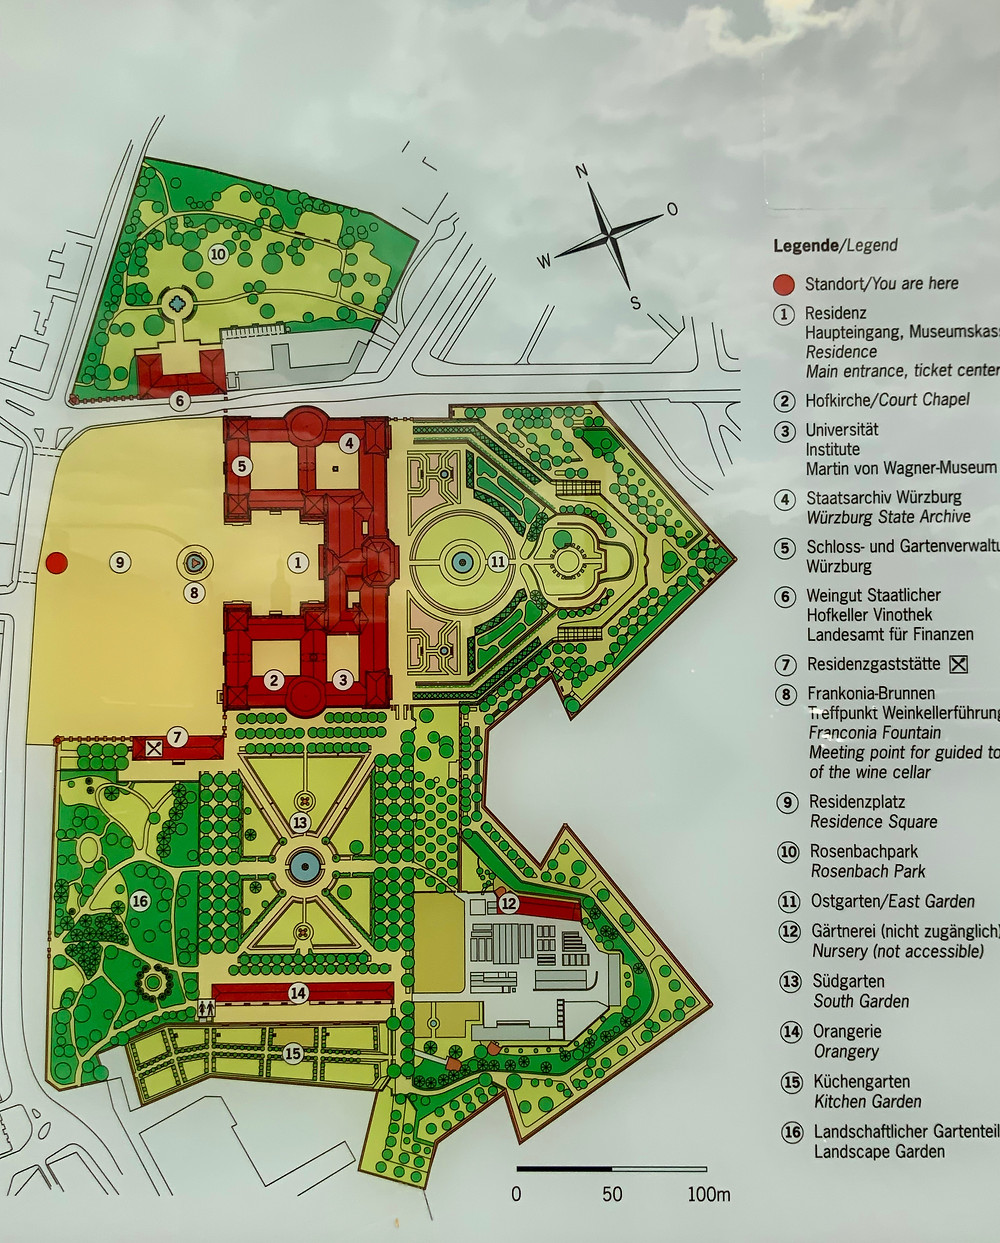 Here's a map of the Wurzburg Residenz, the gardens, and chapel